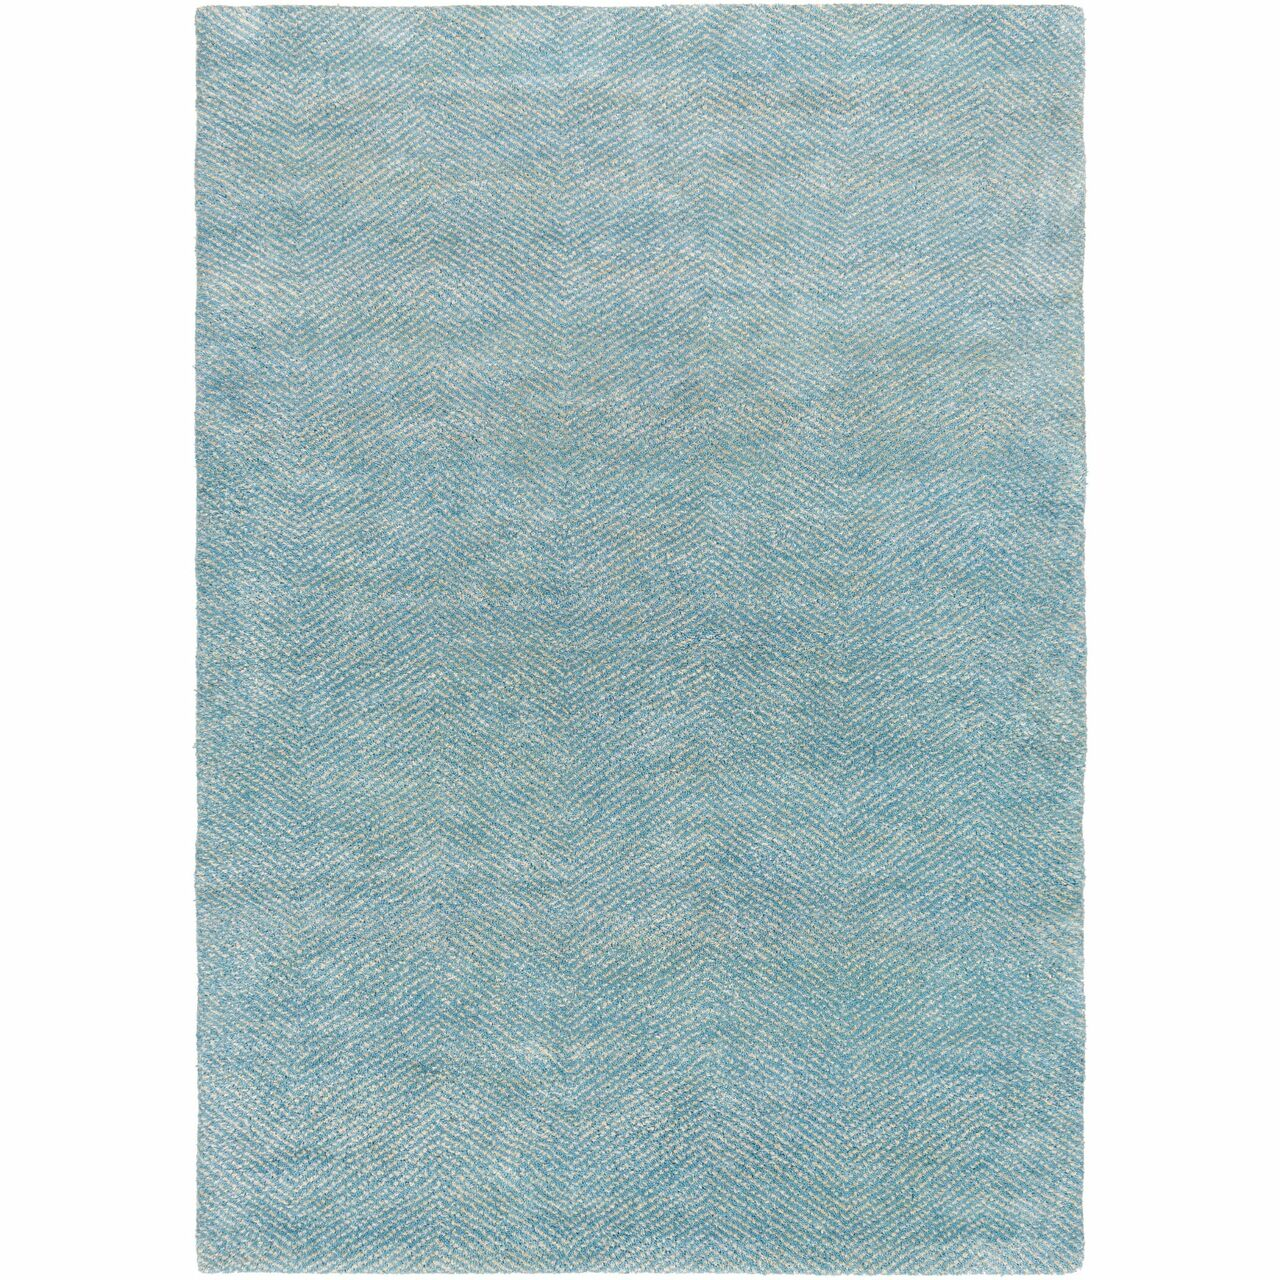 2 X 3 Line Patterned Sky Blue Light Gray Rectangular Hand Knotted Area Throw Rug Christmas Central